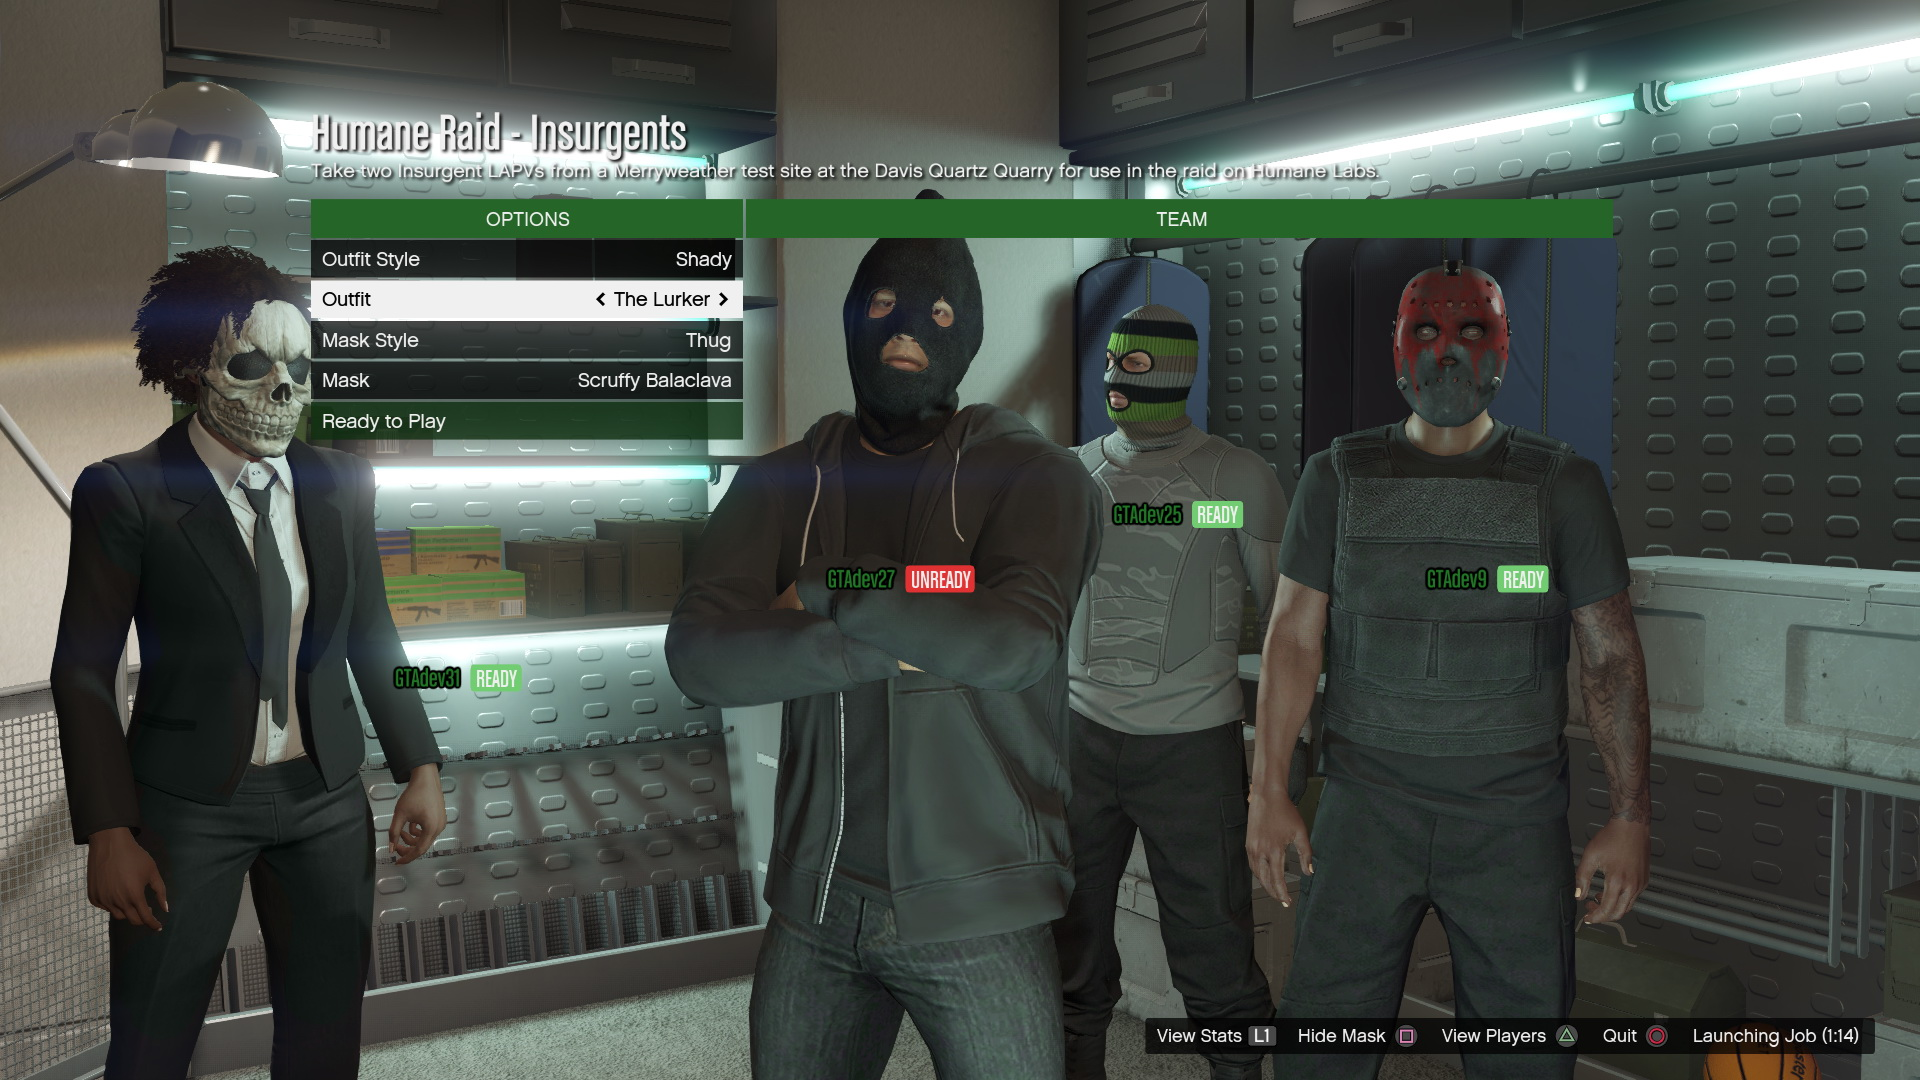 Military Vehicles For Sale >> Massive GTA Online Heists leak reveals outfits, contacts, vehicles, masks and prices - VG247